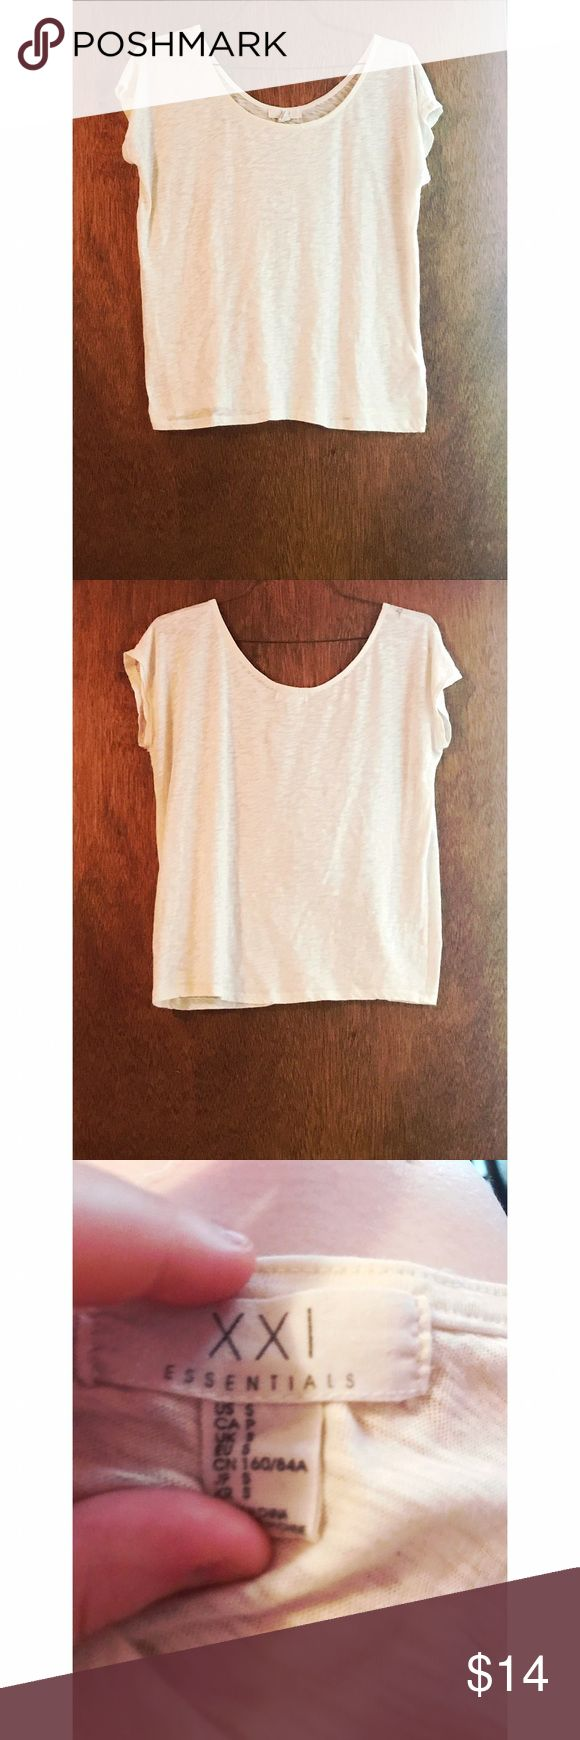 Forever21 Cream Short Sleeve Top Forever21 Cream Short Sleeve Top in size small. Small tear on the seam of the right shoulder - pictured. Can probably be sewn easily. I'm just not very skilled at sewing personally. Barely noticeable, and would never be seen if you have long hair and wear it down. Very cute and in perfect condition otherwise! Price reflects and feel free to ask any questions you may have. Offers welcome! Forever 21 Tops Tees - Short Sleeve